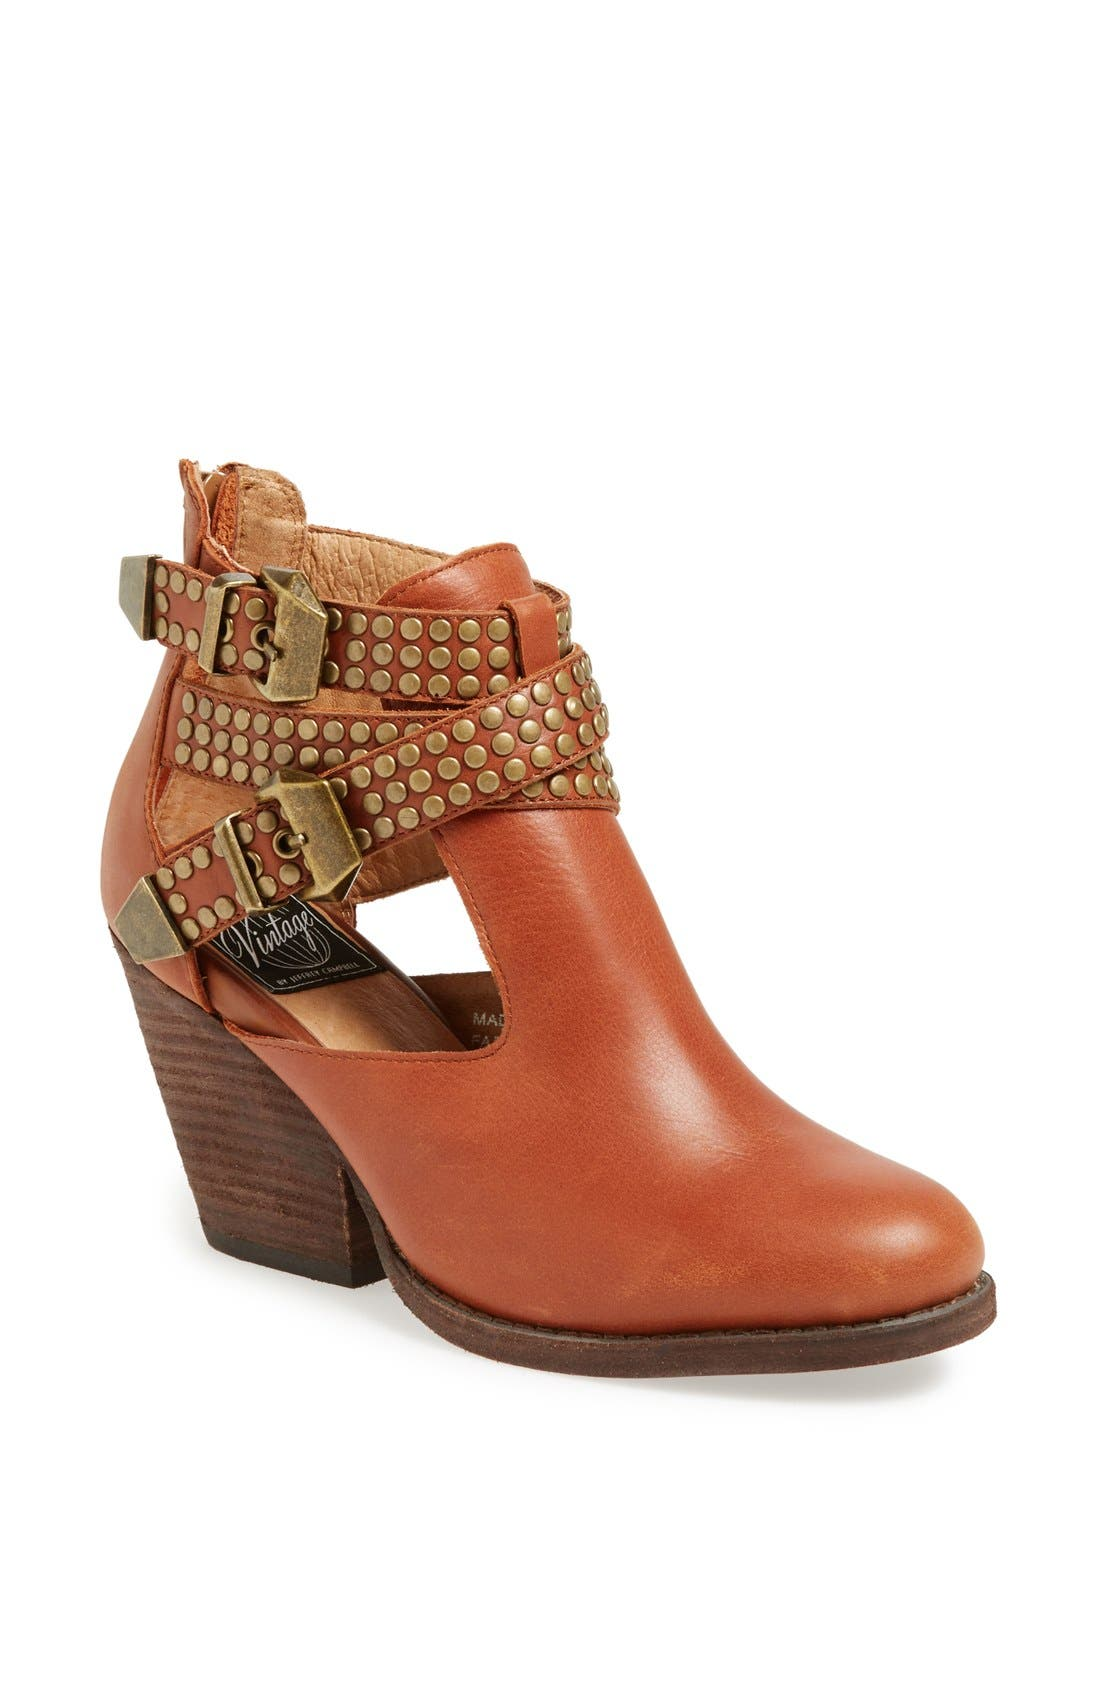 Alternate Image 1 Selected - Jeffrey Campbell 'Watson' Boot